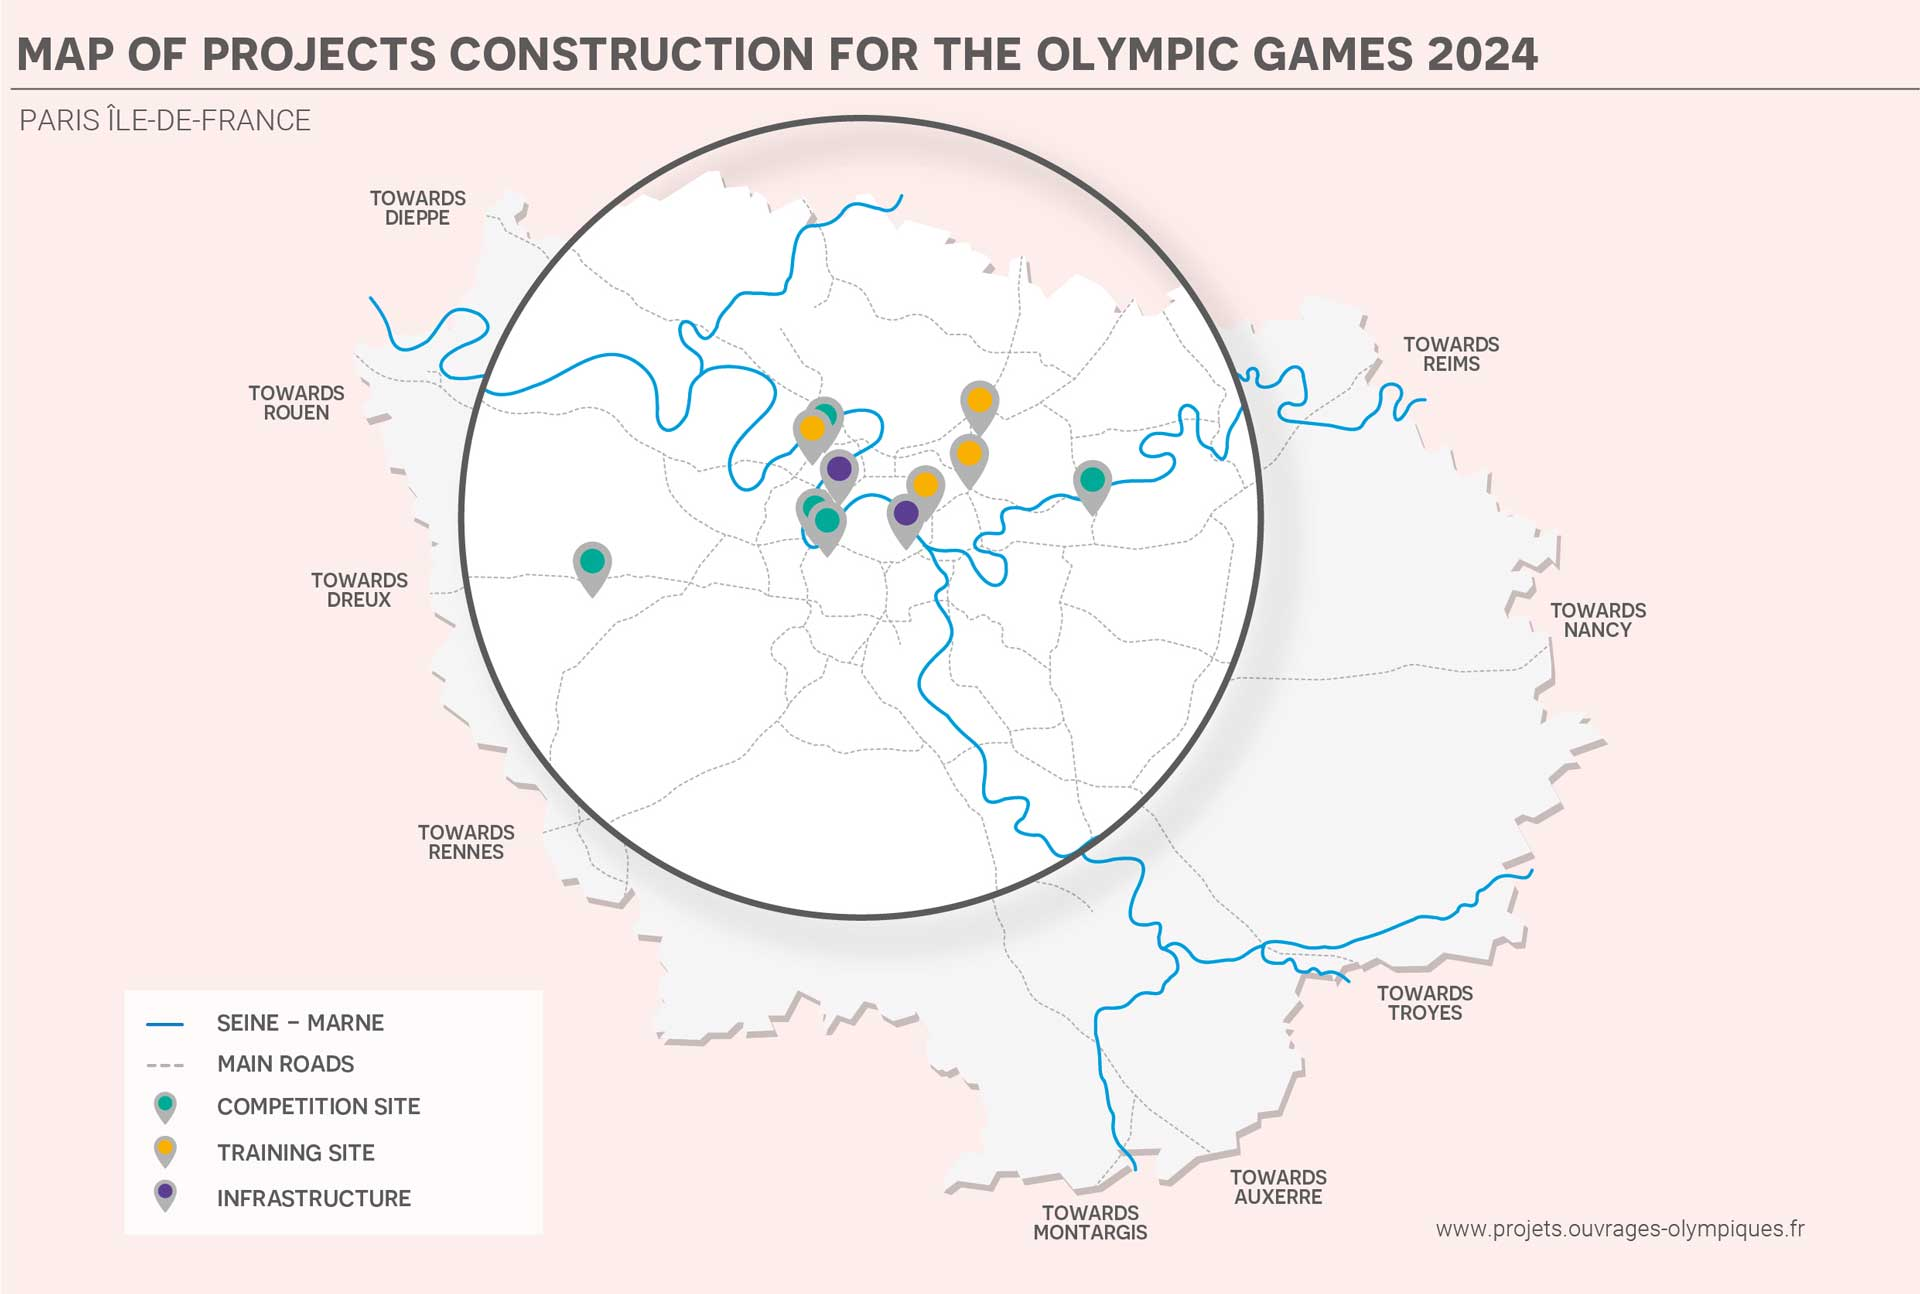 Map of Projects Construction for the Olympic Games 2024